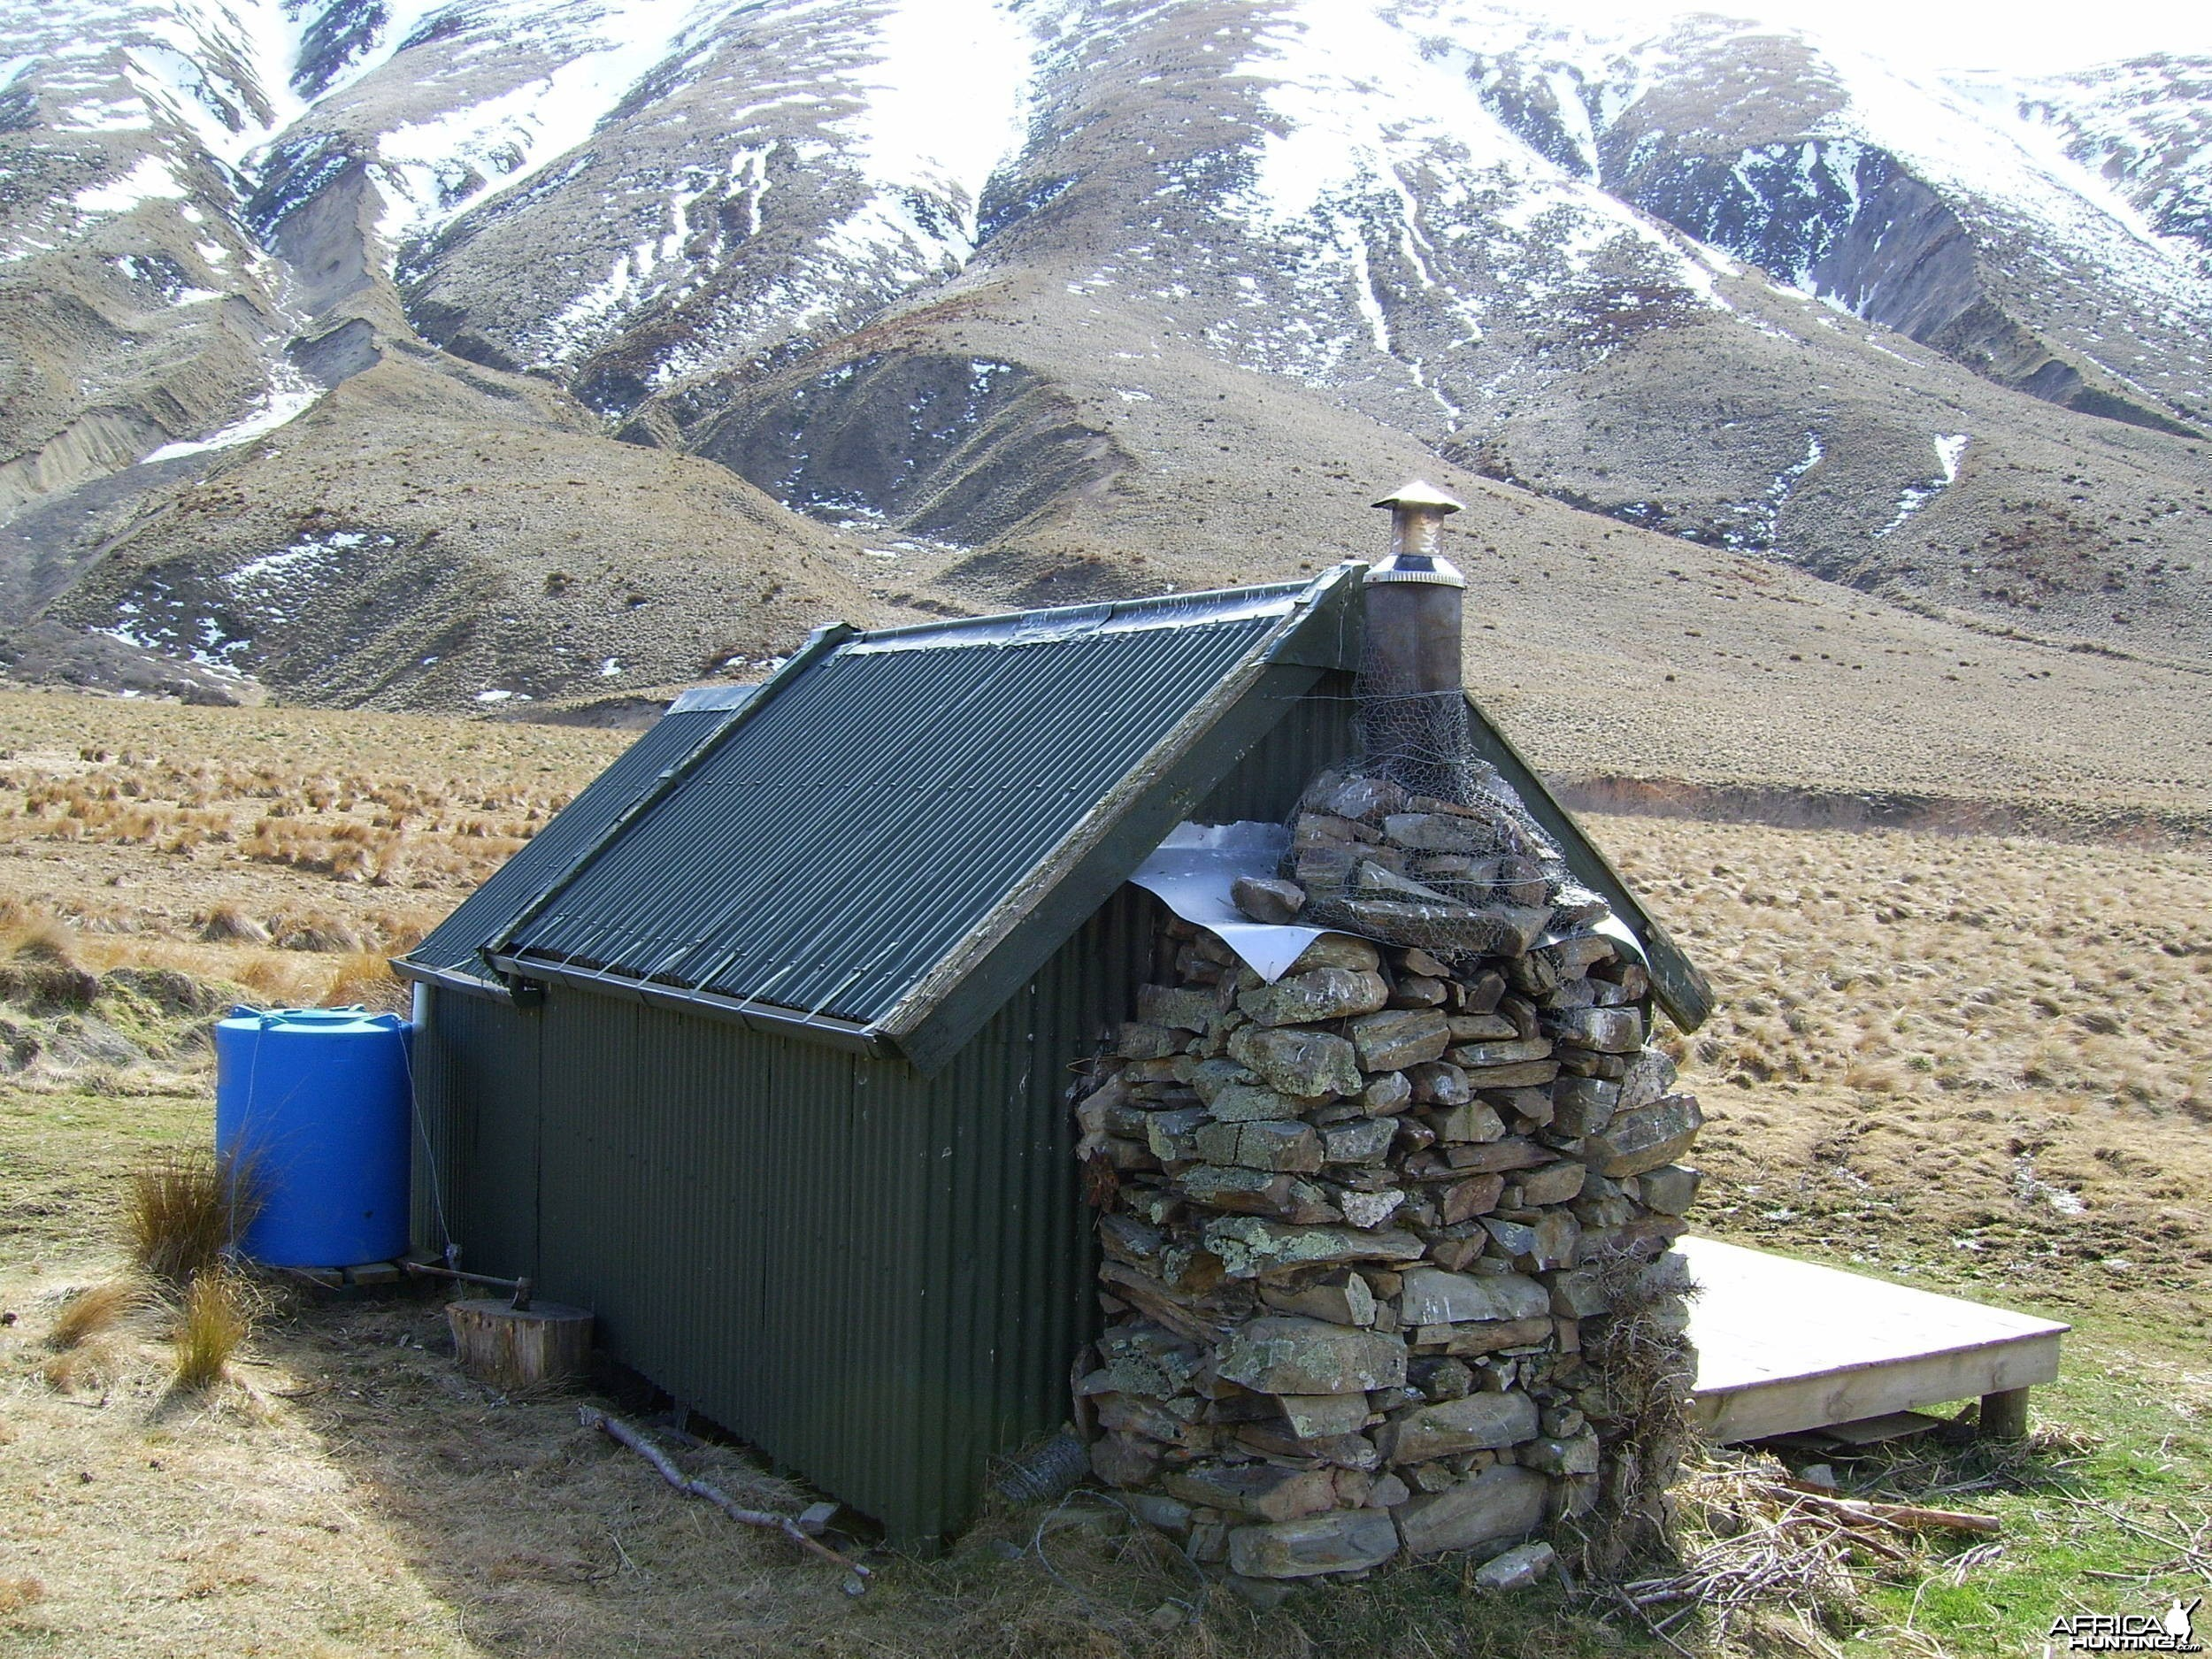 Public land hut - Thar and Chamois hunting area